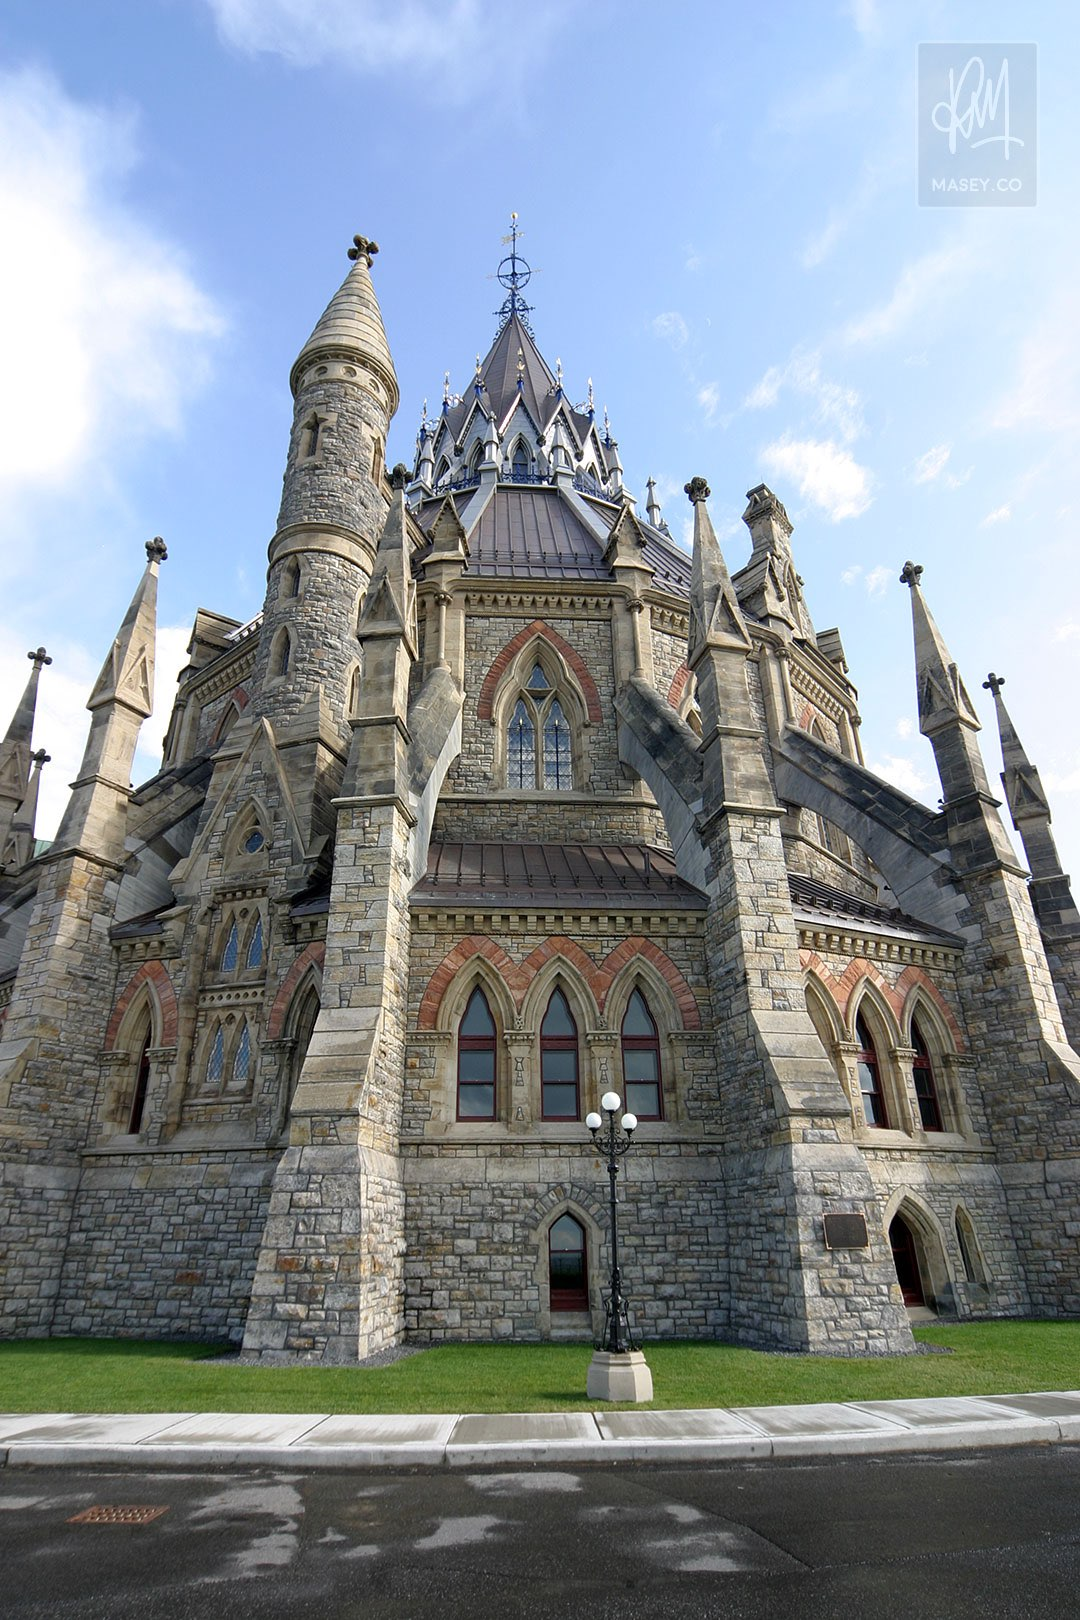 Hogwarts or the Canadian Houses of Parliament?